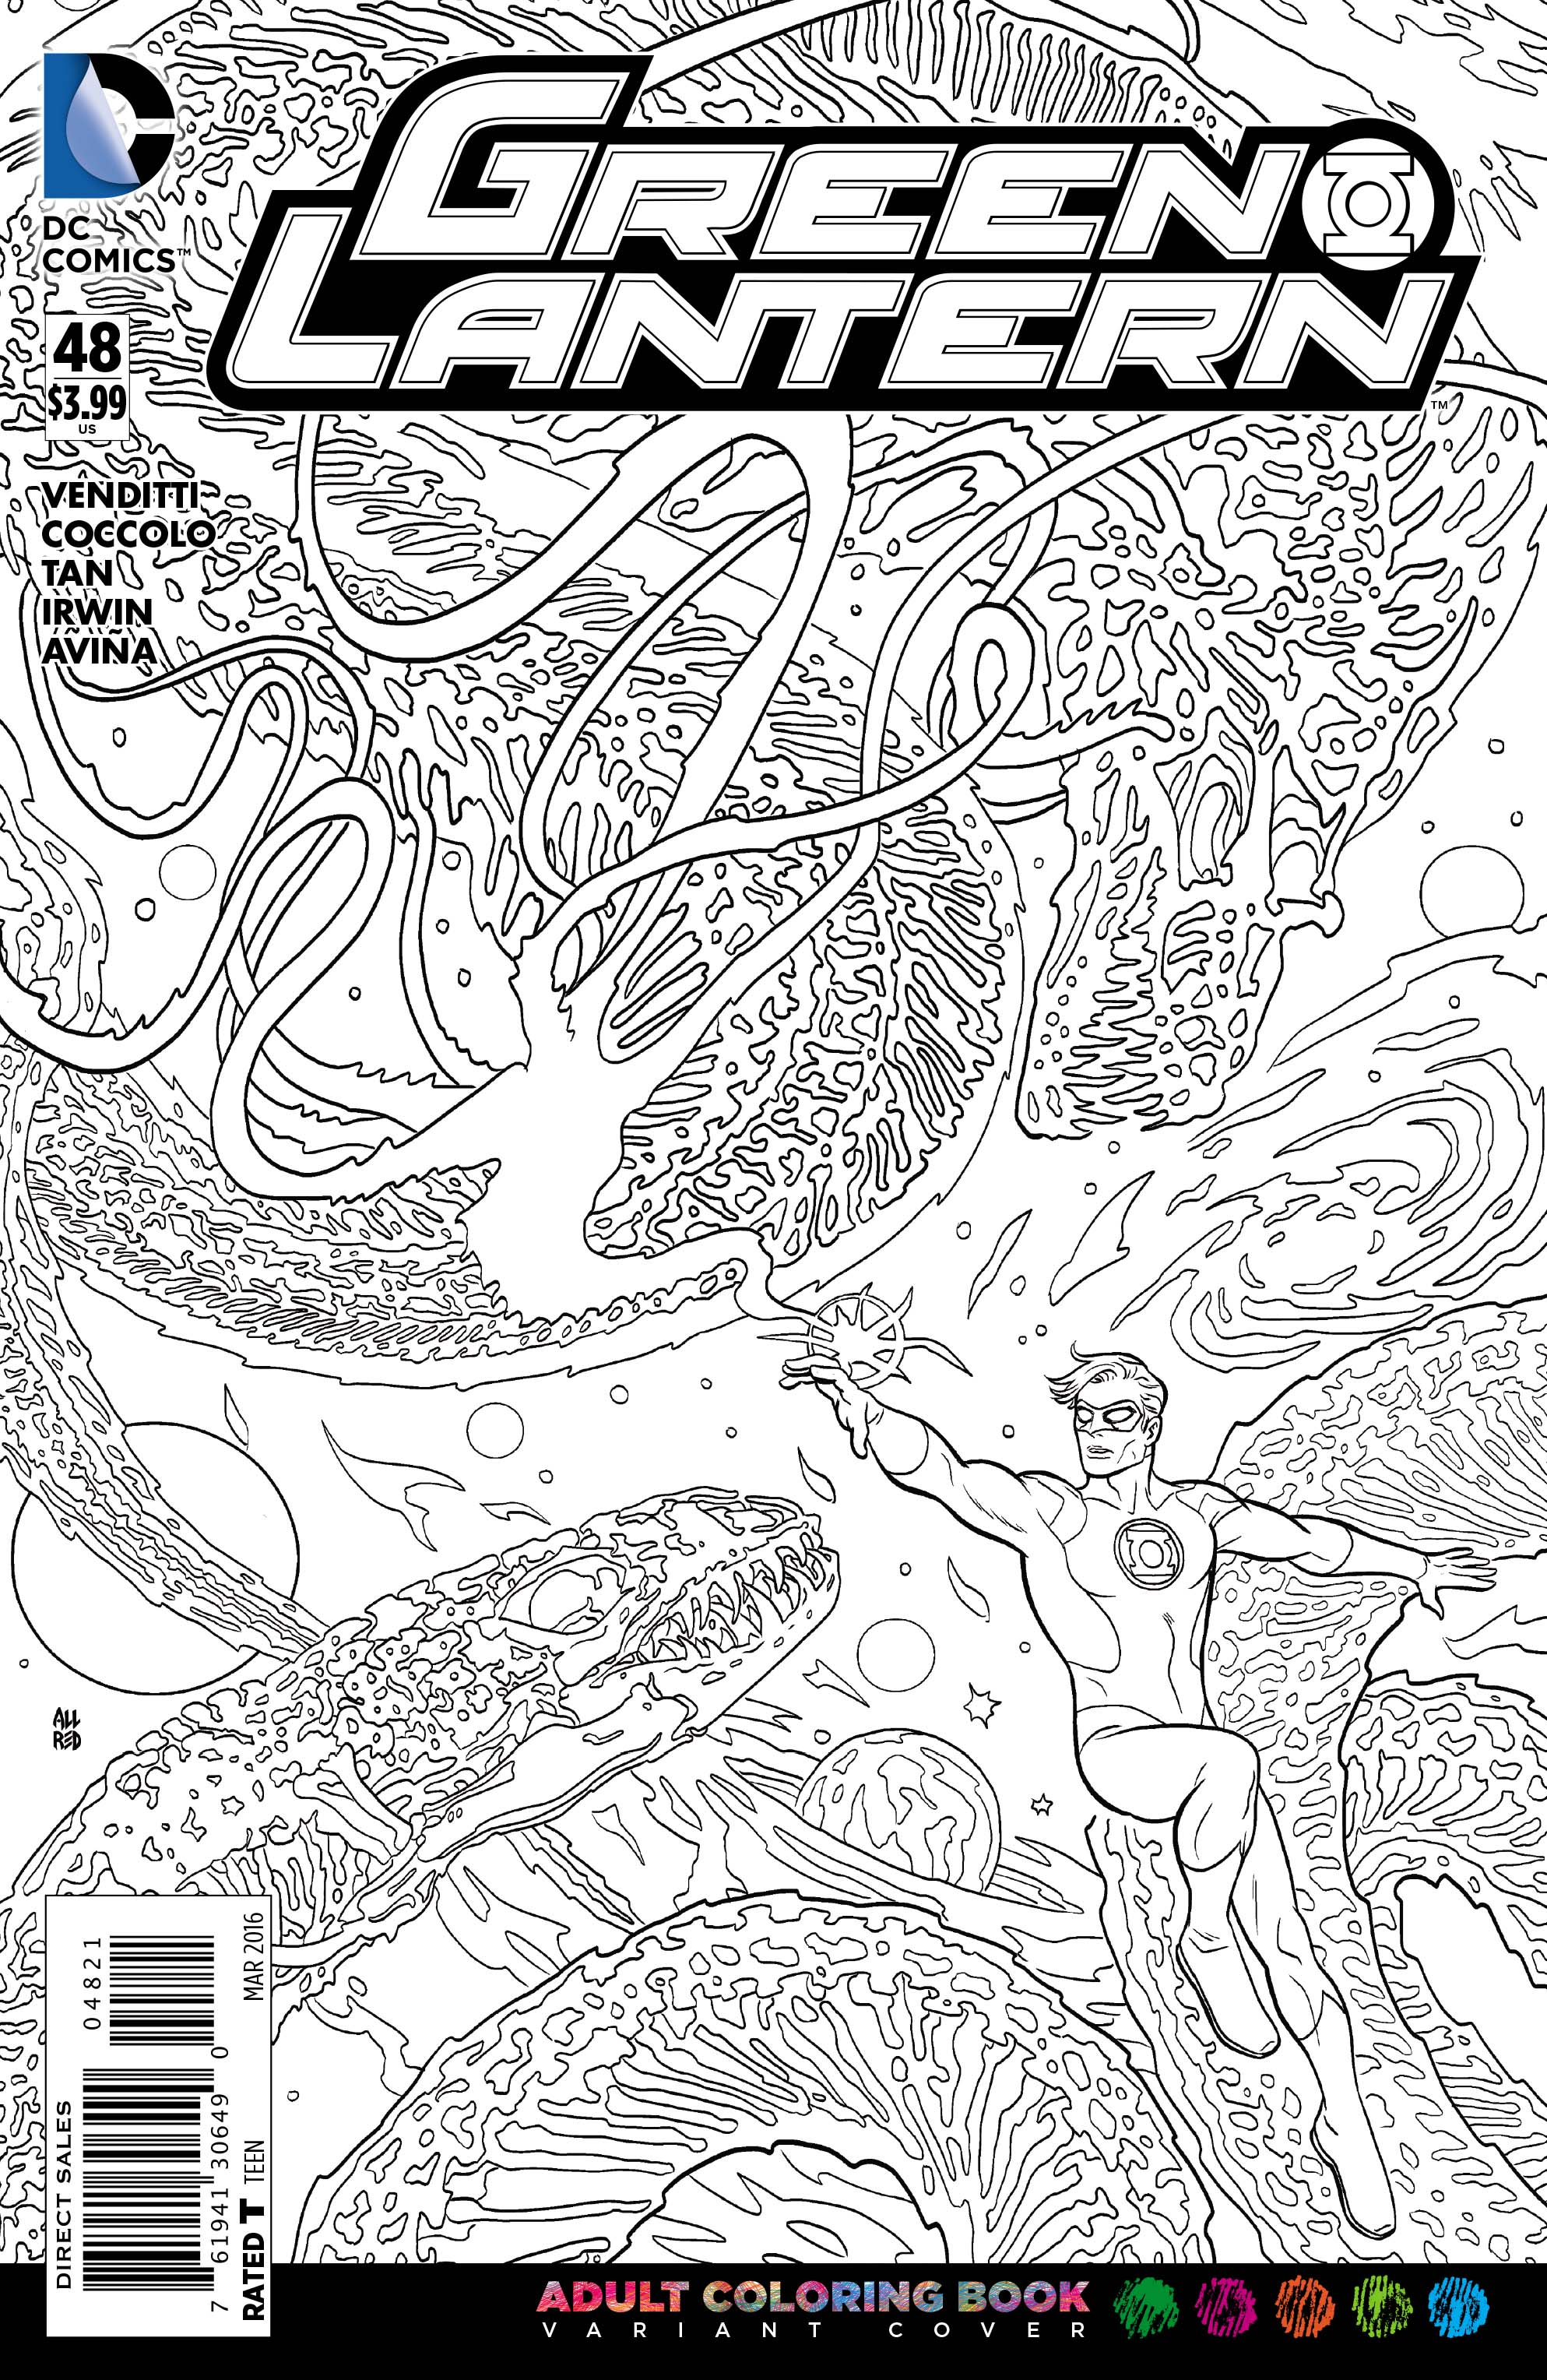 DCs Adult Coloring Book Variant Covers Begin To Arrive In Shops Next Week